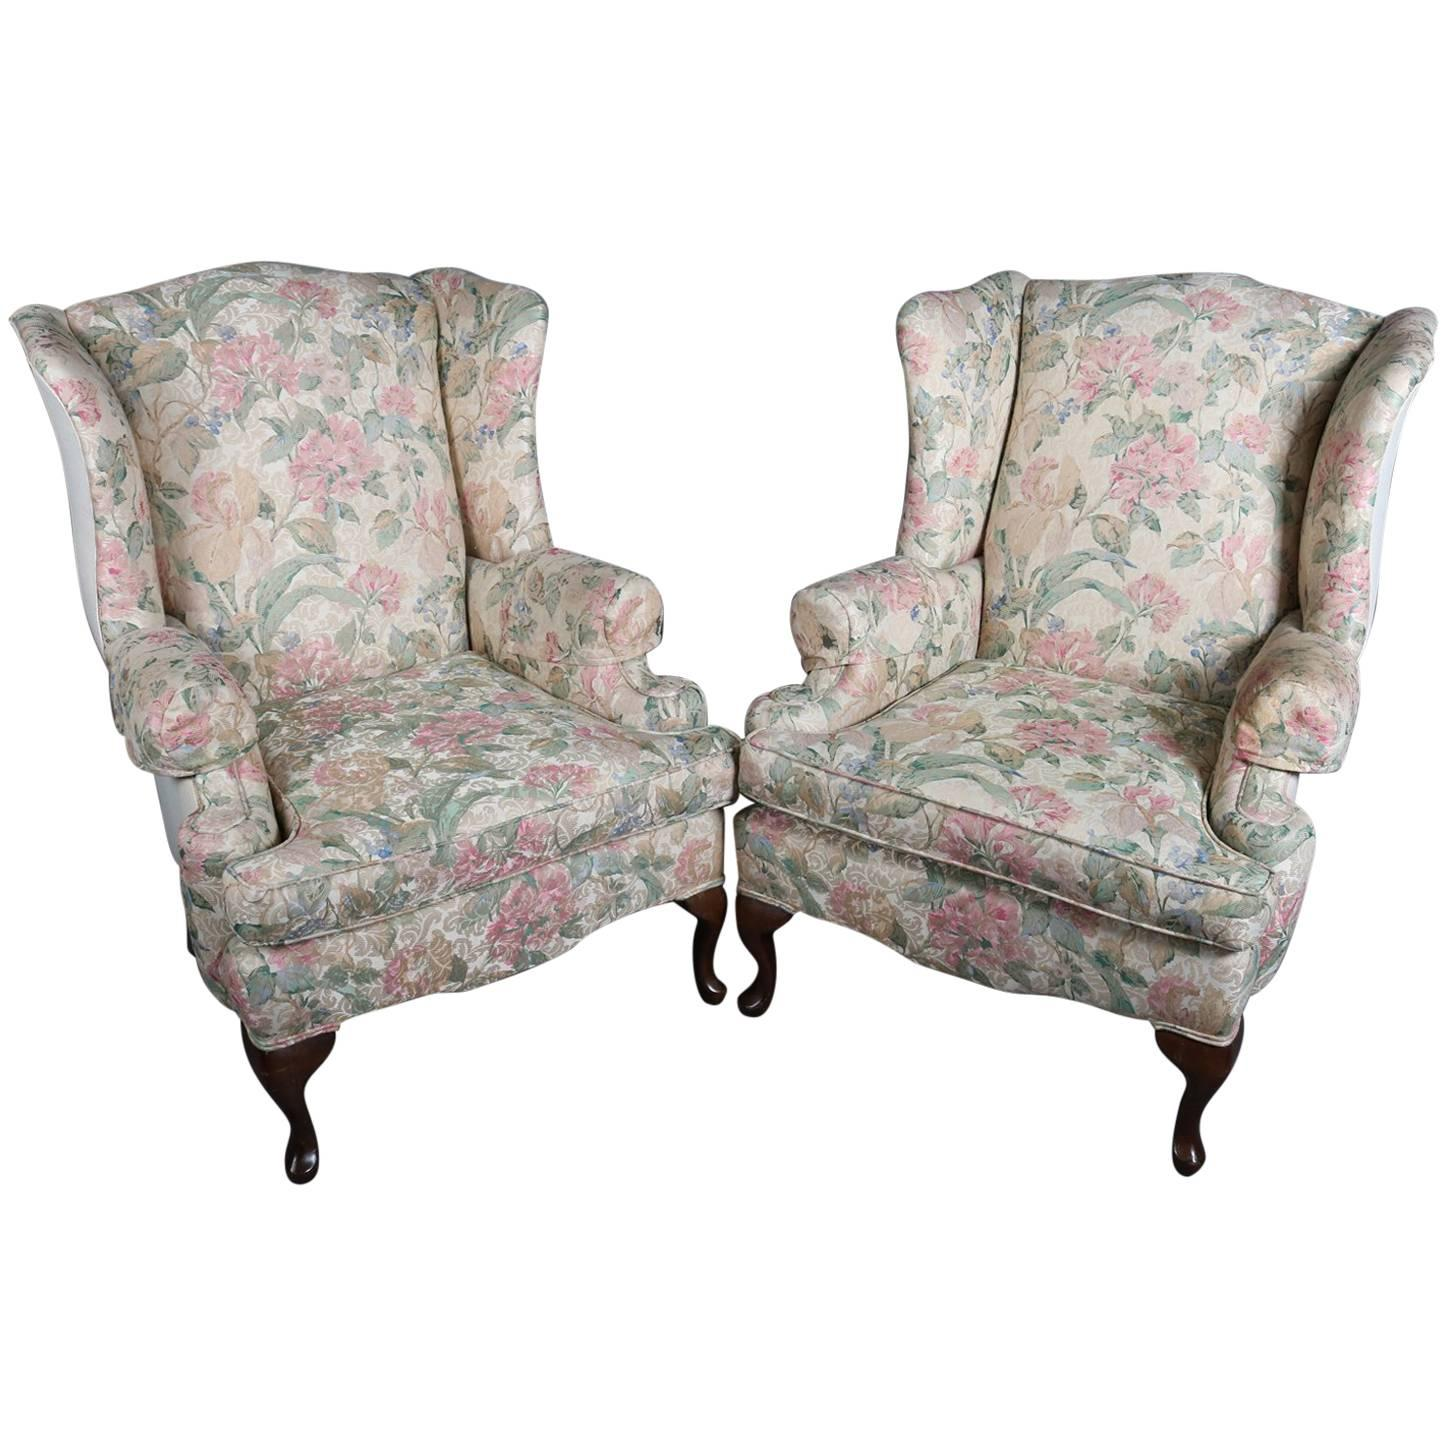 queen anne style chair tall dining room covers pair of floral upholstered wingback chairs 20th century for sale